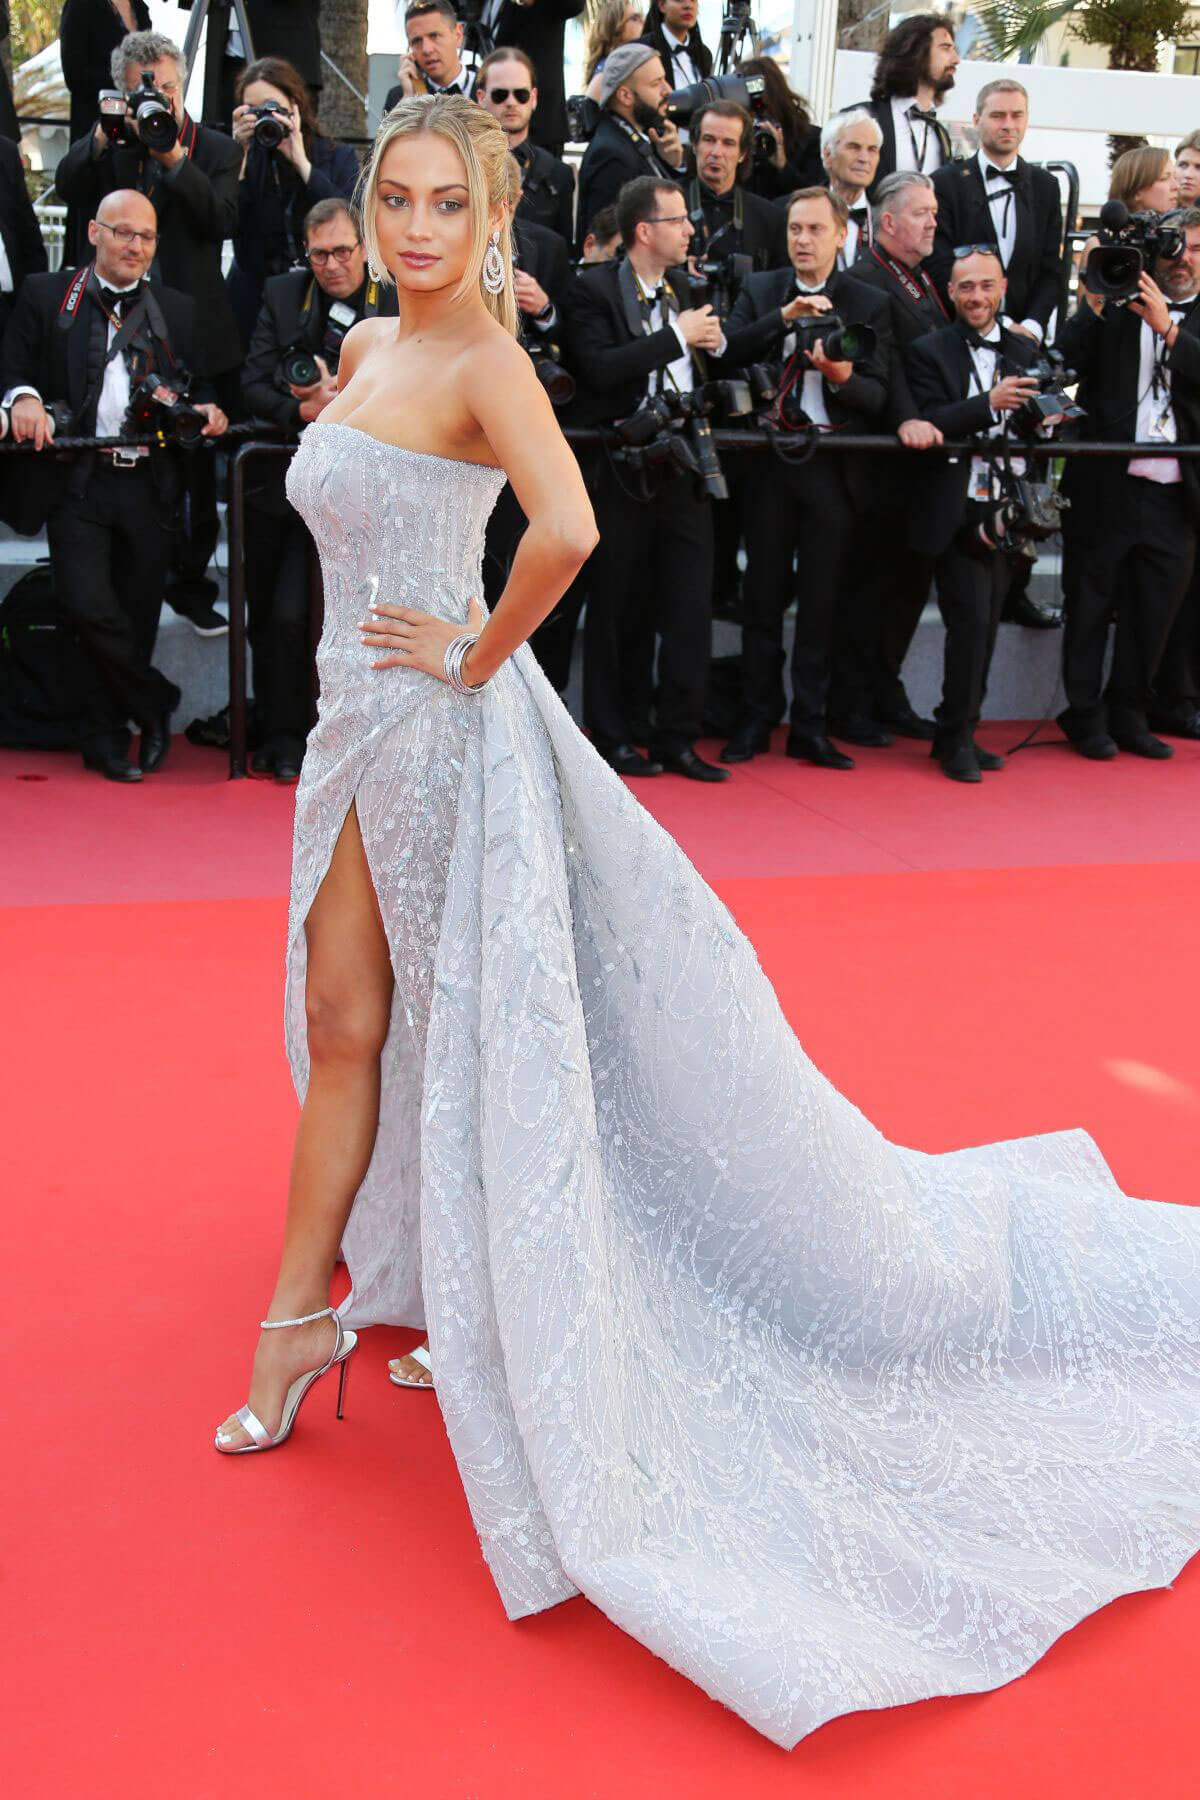 Rose Bertram at Capharnaum Premiere at 2018 Cannes Film Festival 2018/05/17 1